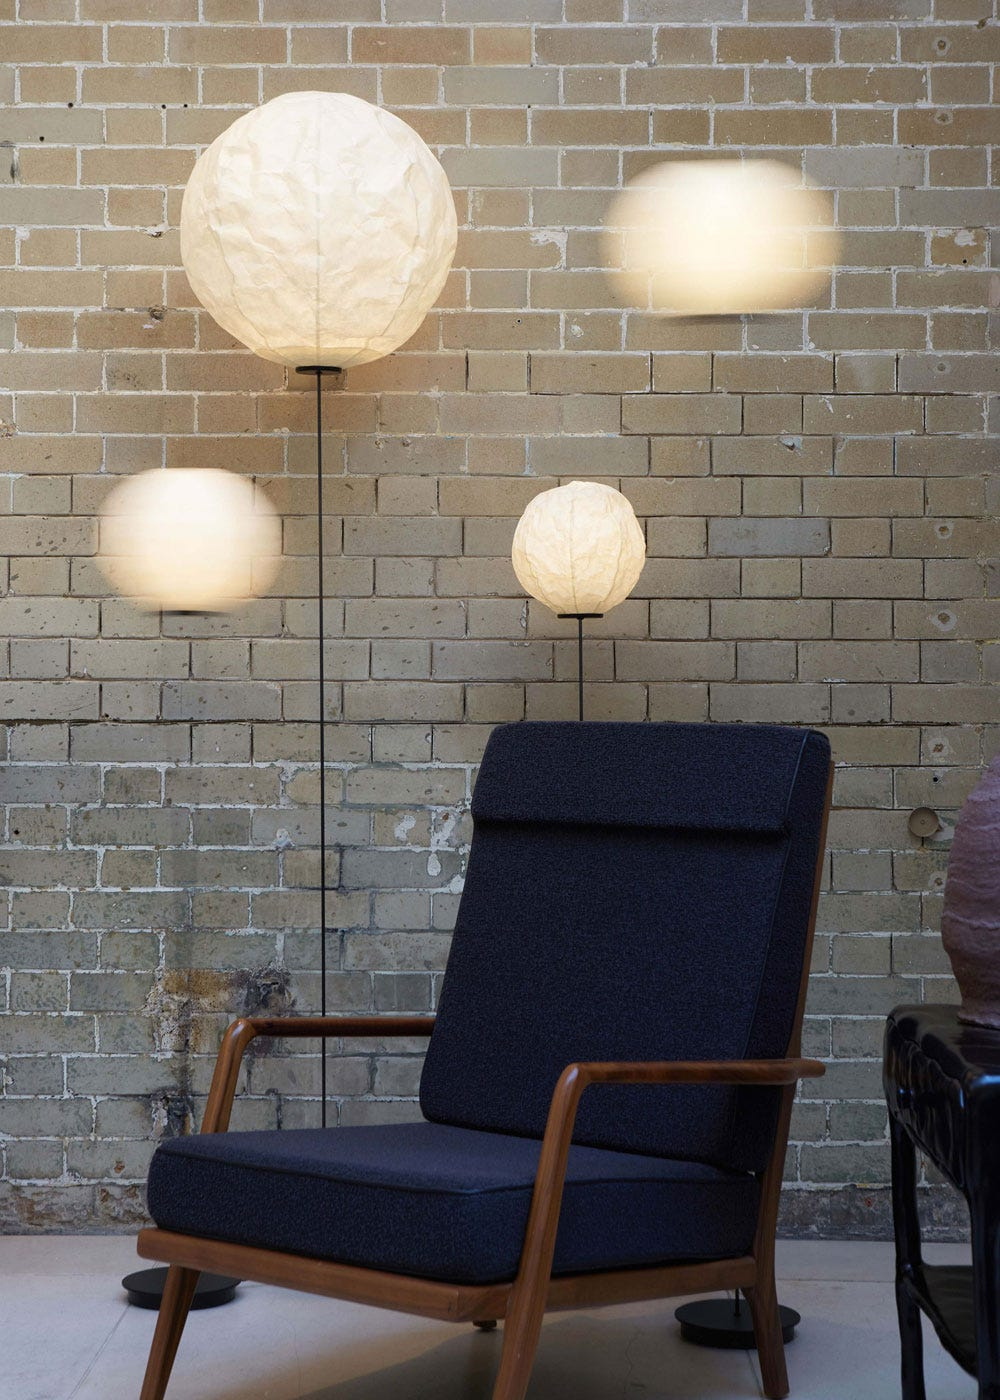 As shown: Cho Light F2 Floor Lamp Collection.